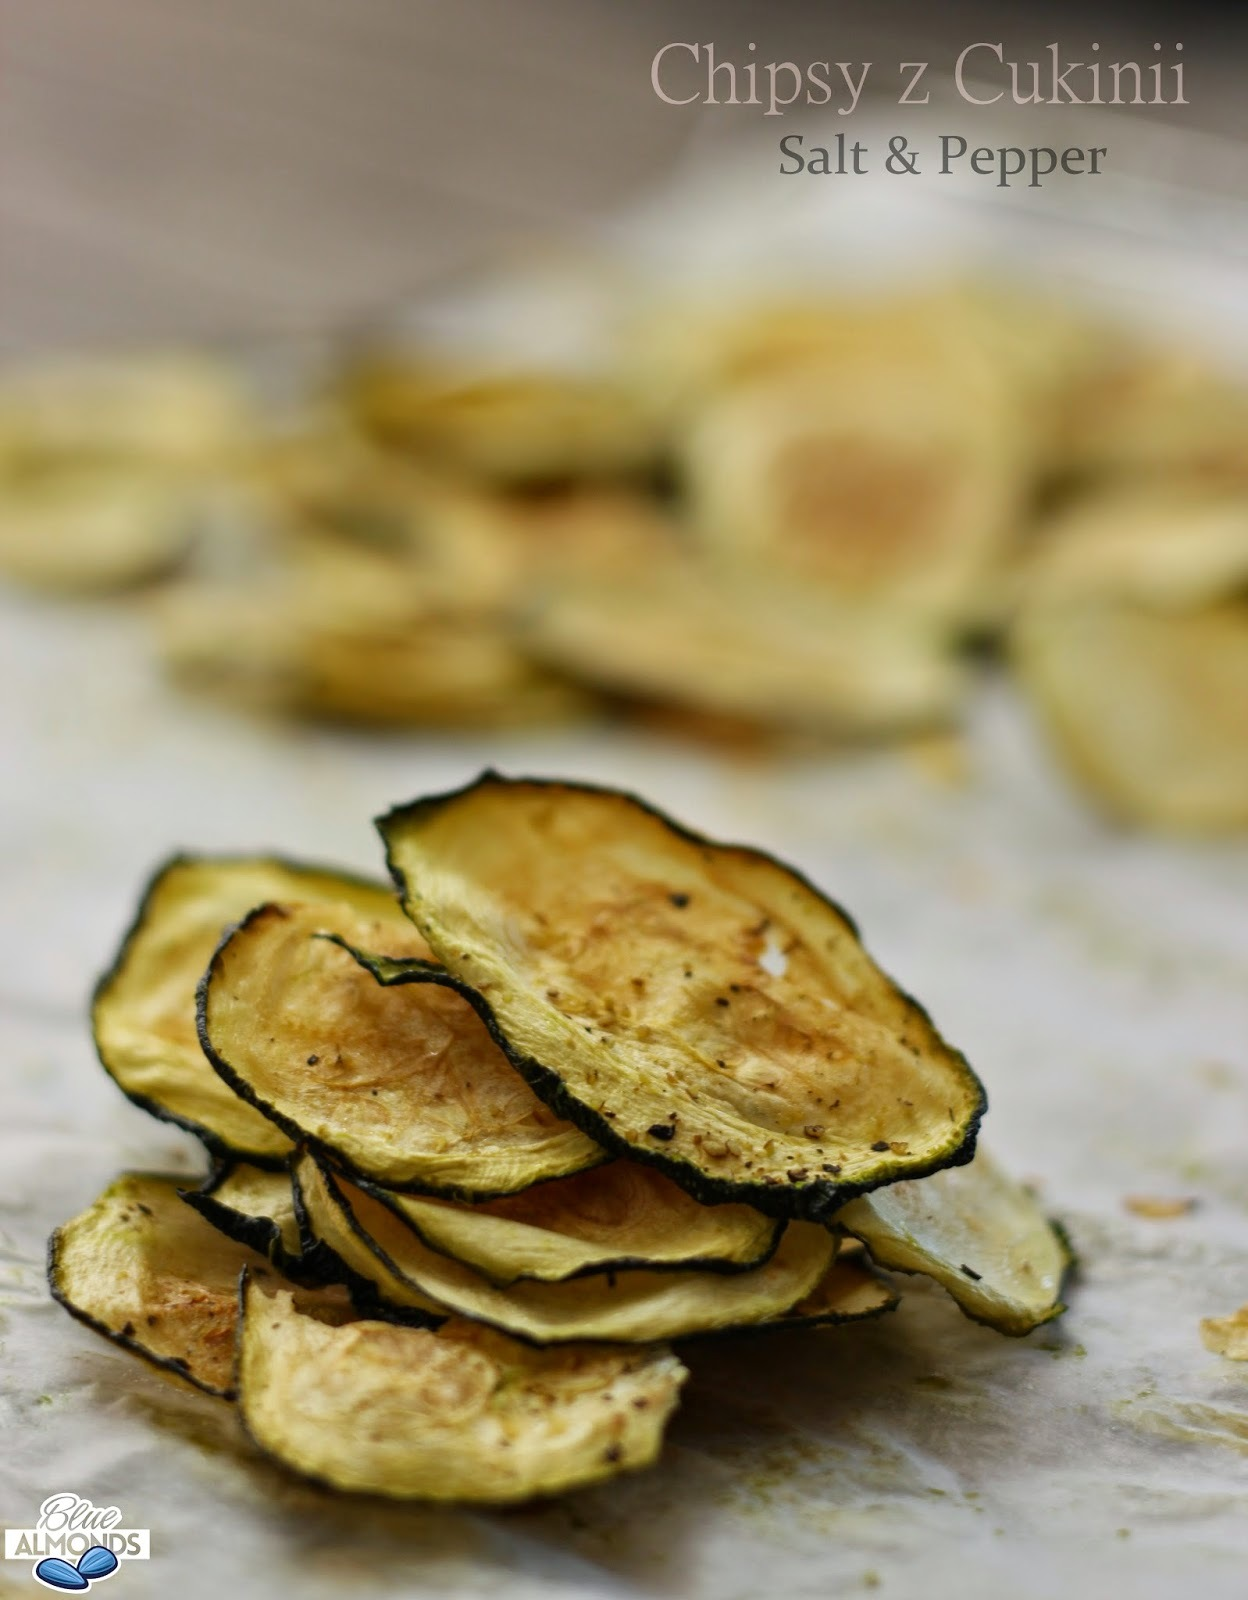 Chipsy z Cukinii Pieprz & Sól / Pepper & Salt Zucchini Chips (raw vegan)